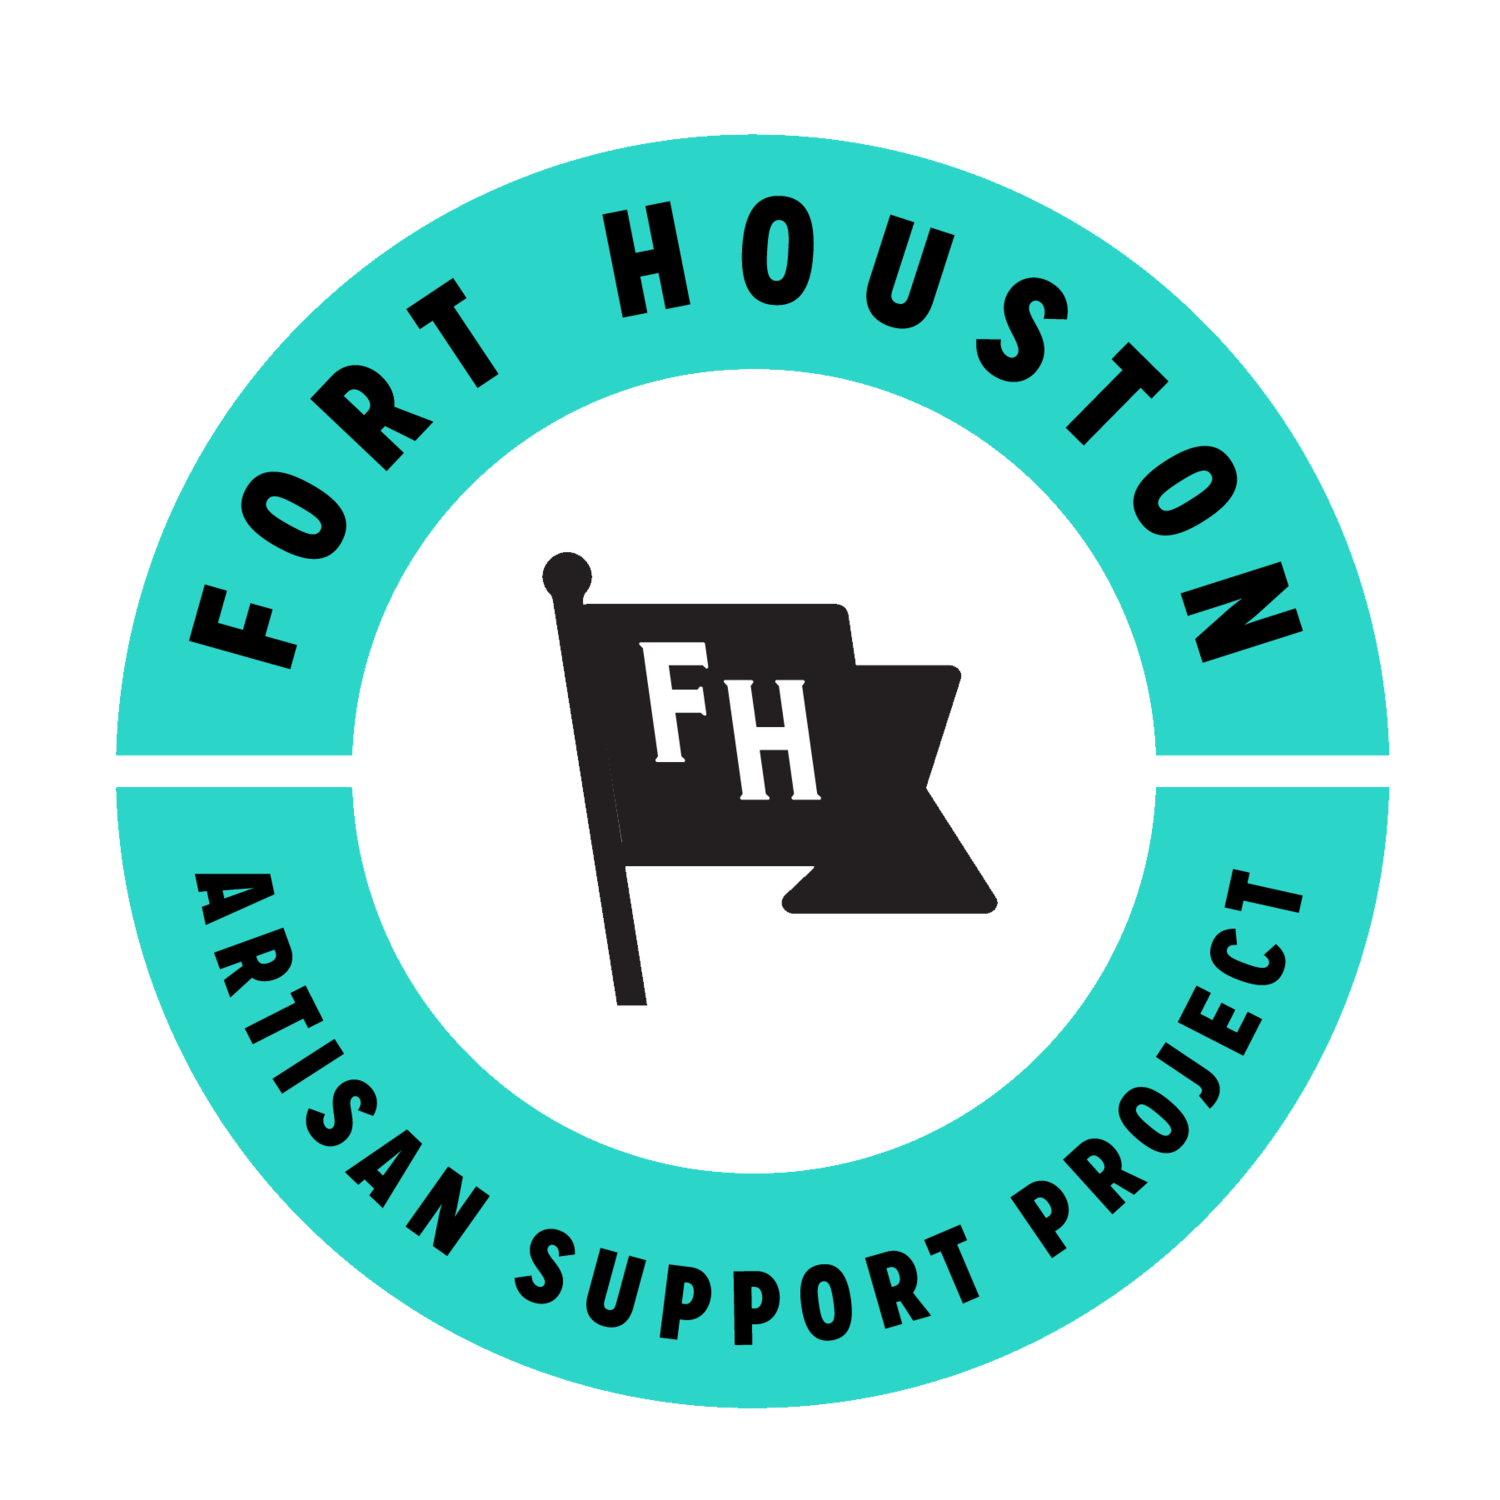 Fort Houston Artisan Support Project